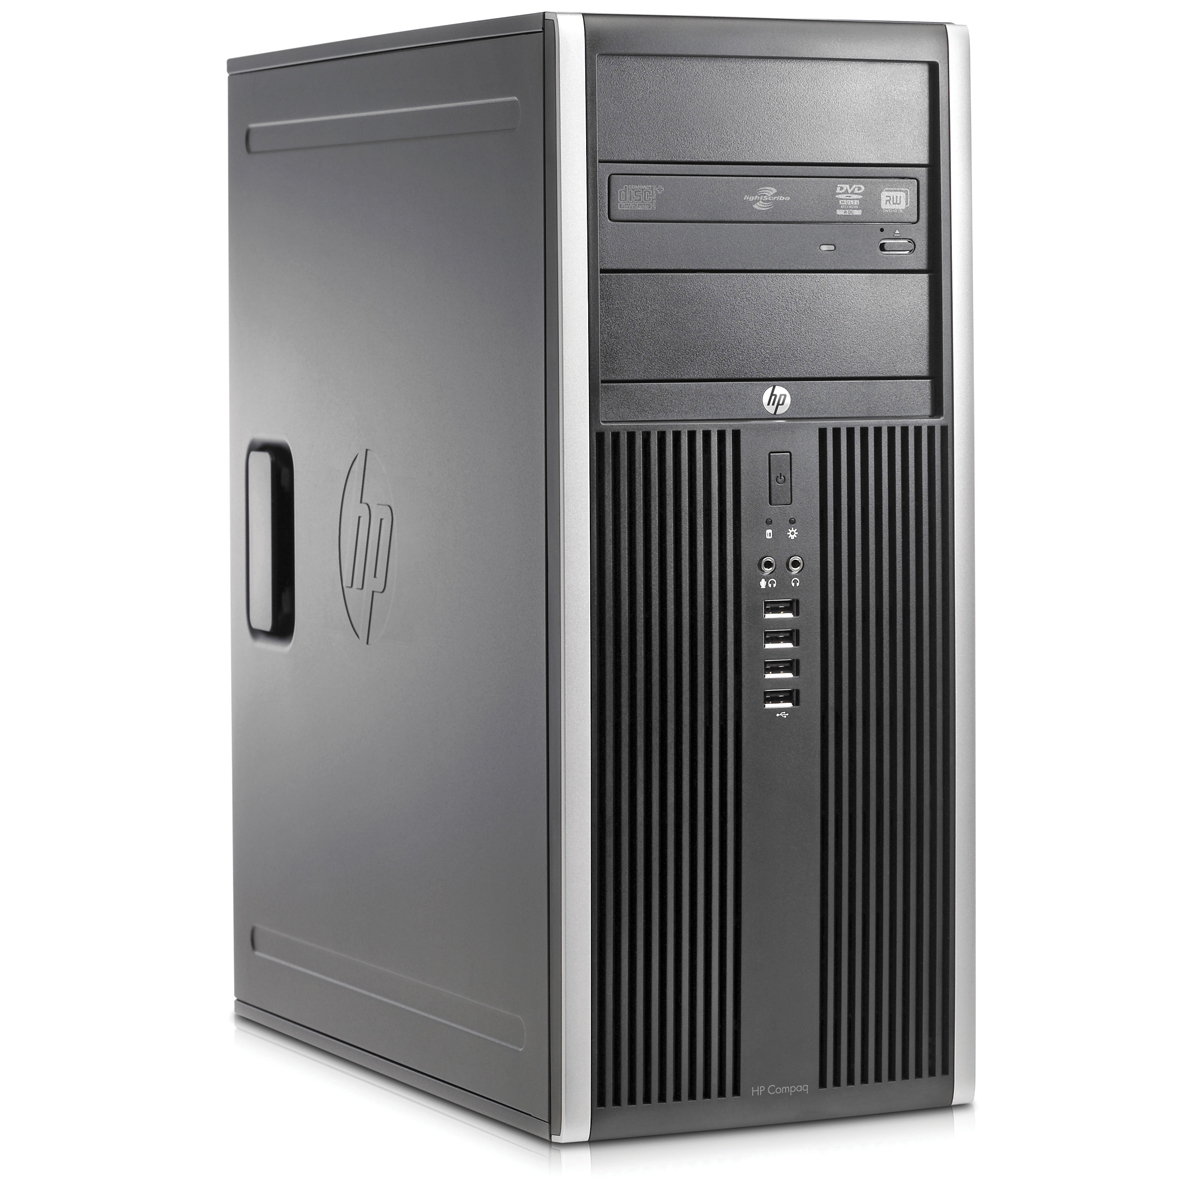 hp compaq 8200 elite xy129et pc de bureau hp sur ldlc. Black Bedroom Furniture Sets. Home Design Ideas